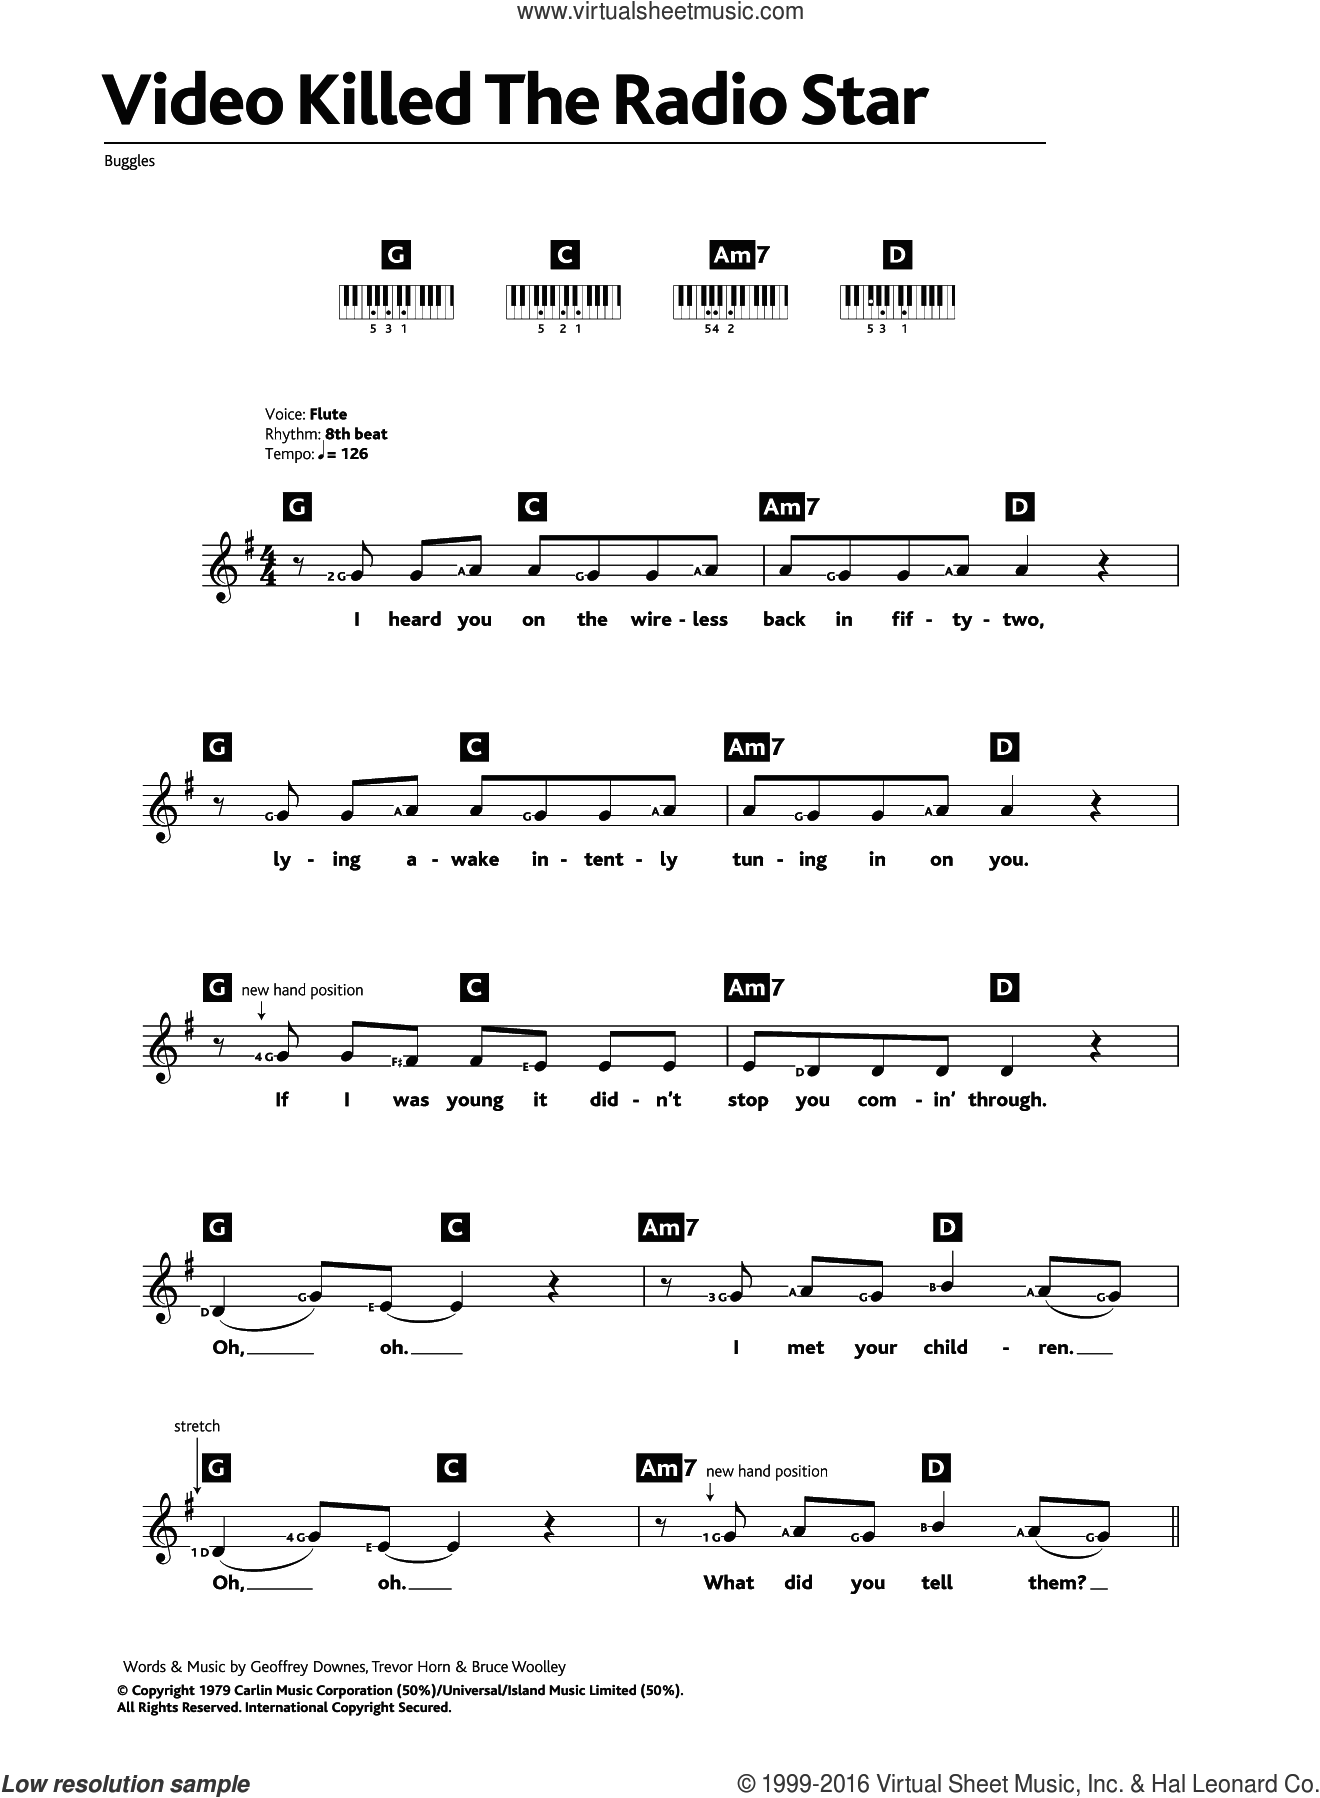 Video Killed The Radio Star sheet music for piano solo (chords, lyrics, melody) by Trevor Horn, Bruce Woolley and Geoff Downes. Score Image Preview.